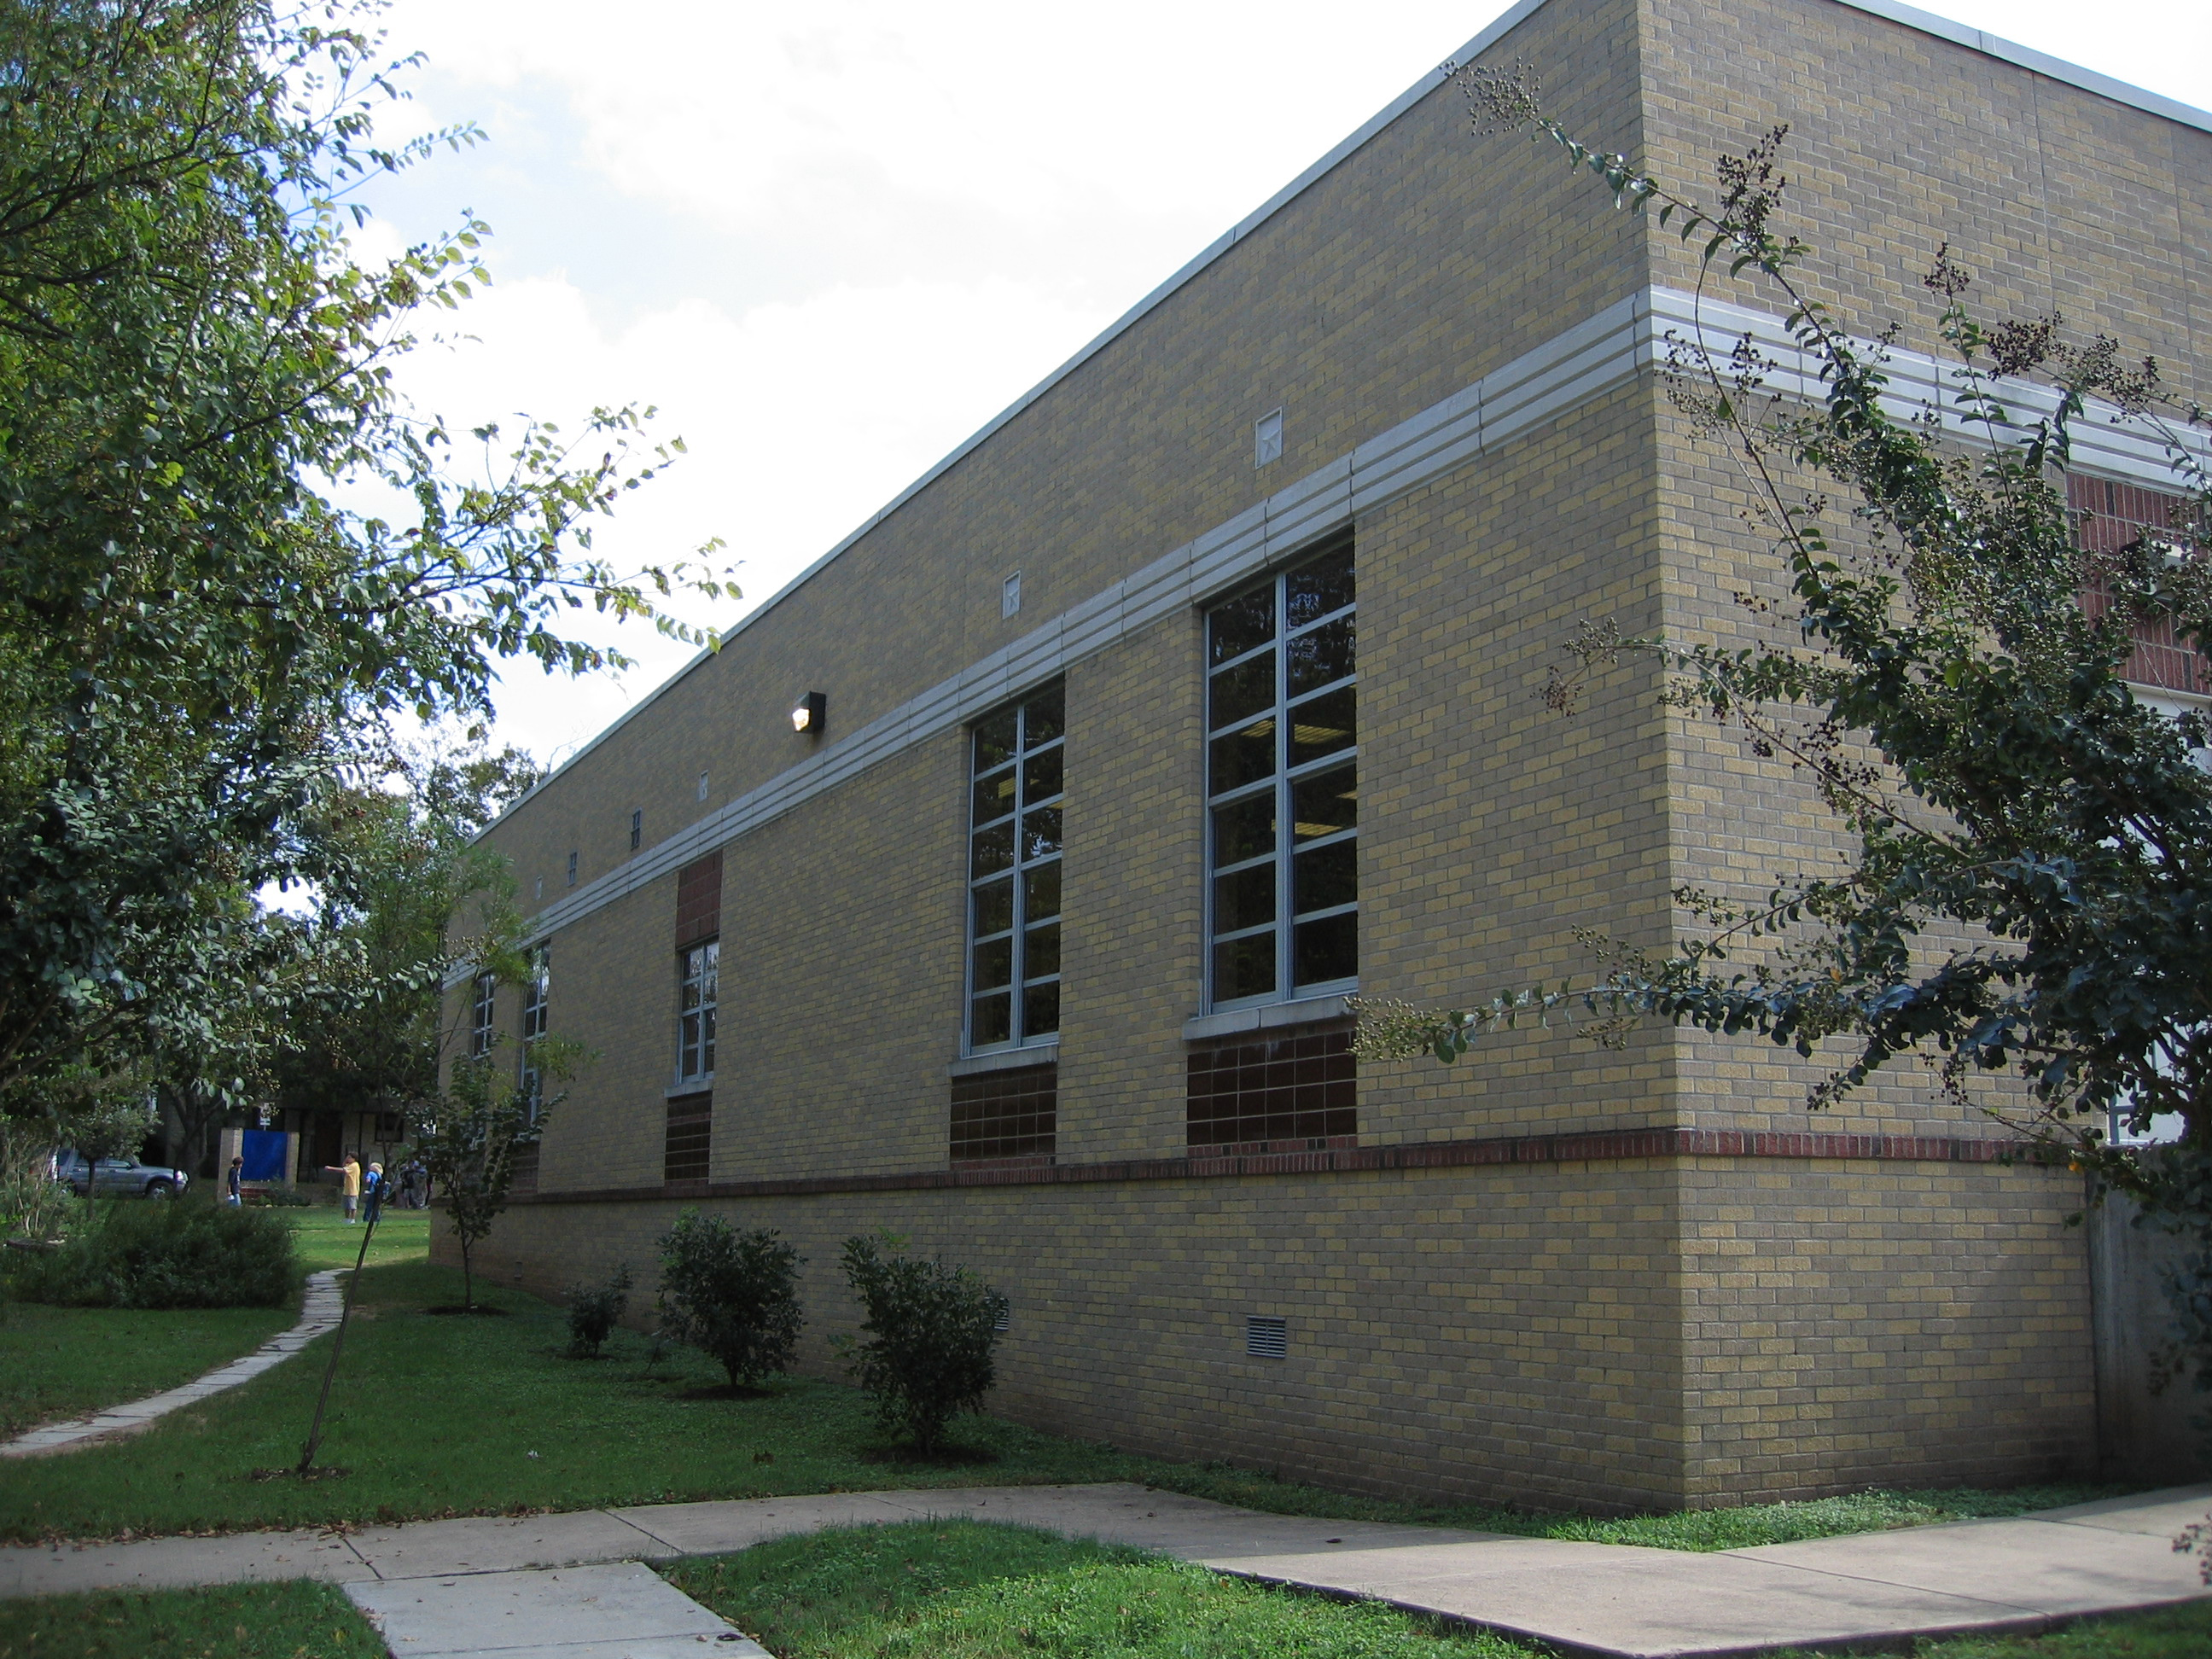 Lee Elementary - New Gymnasium